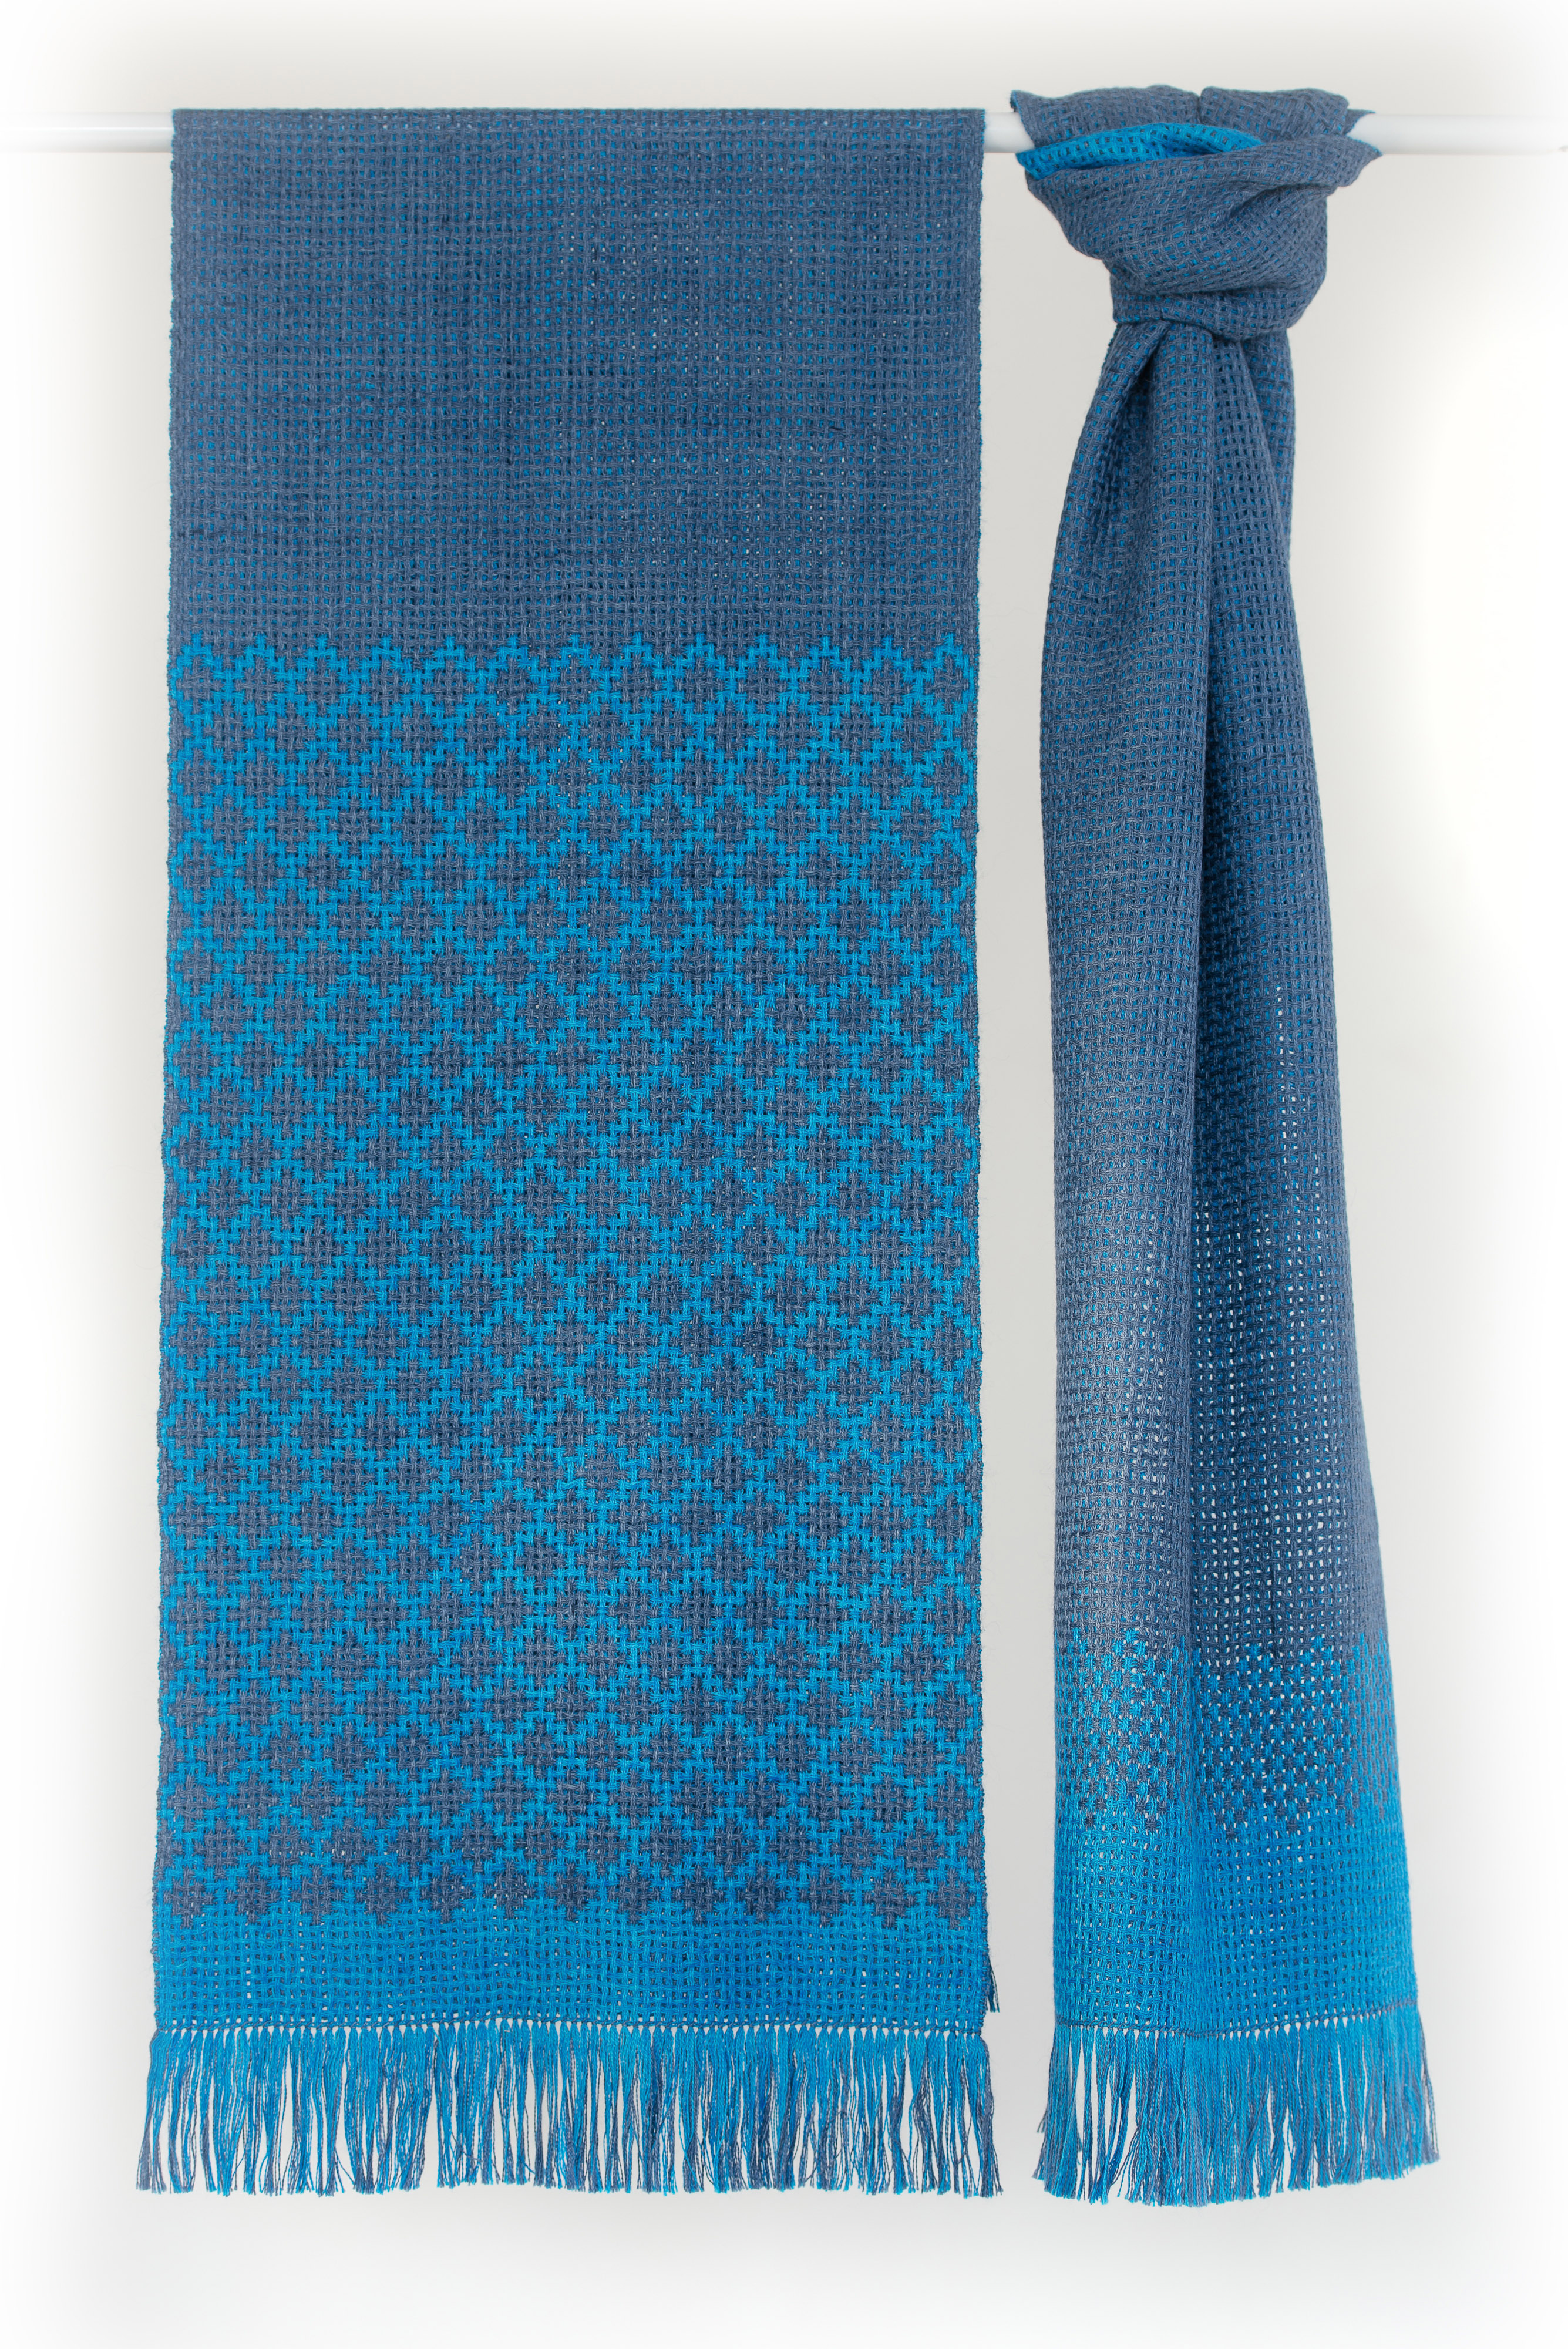 Urban Shorescape over-sized scarves, Waterfront Collection